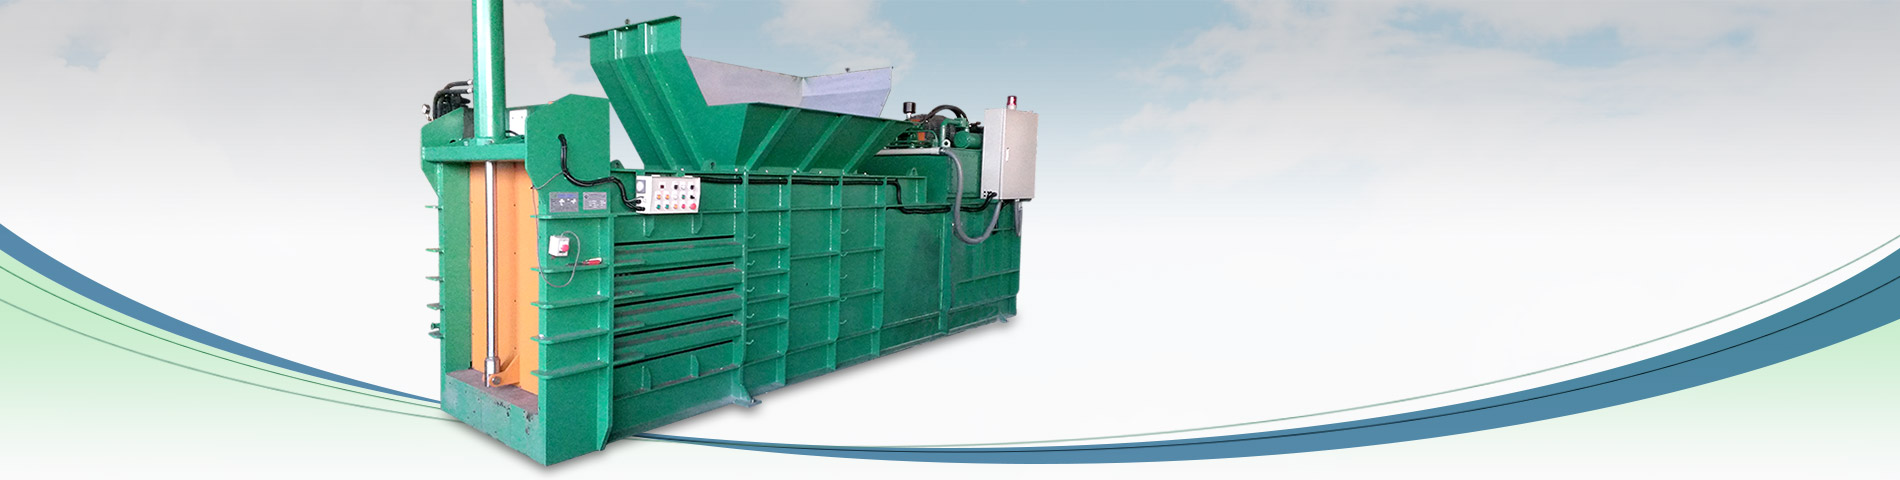 Semi-Auto Close-End Baler